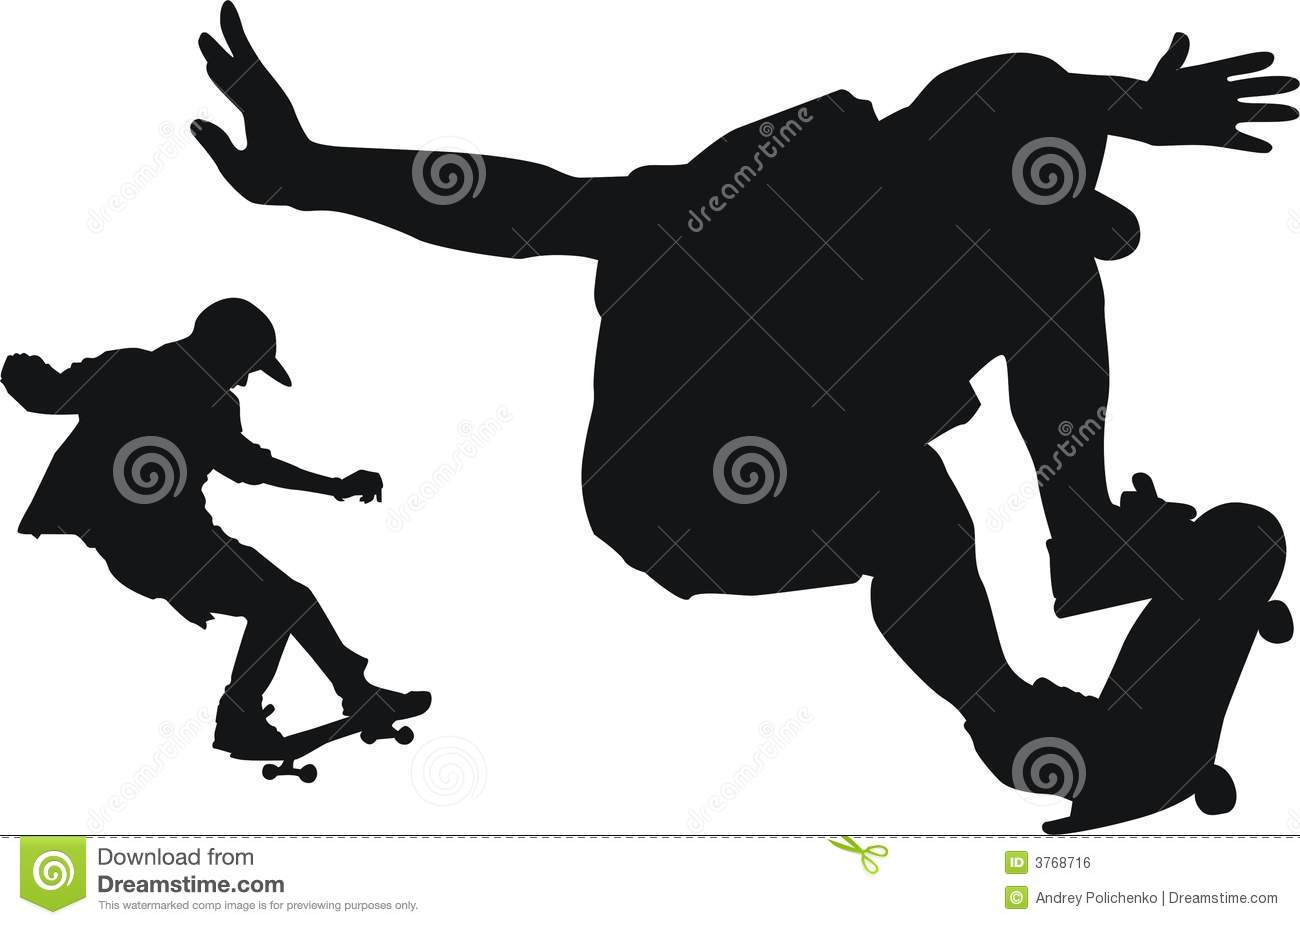 Skateboard Clip Art Black And White It is black white silhouettes